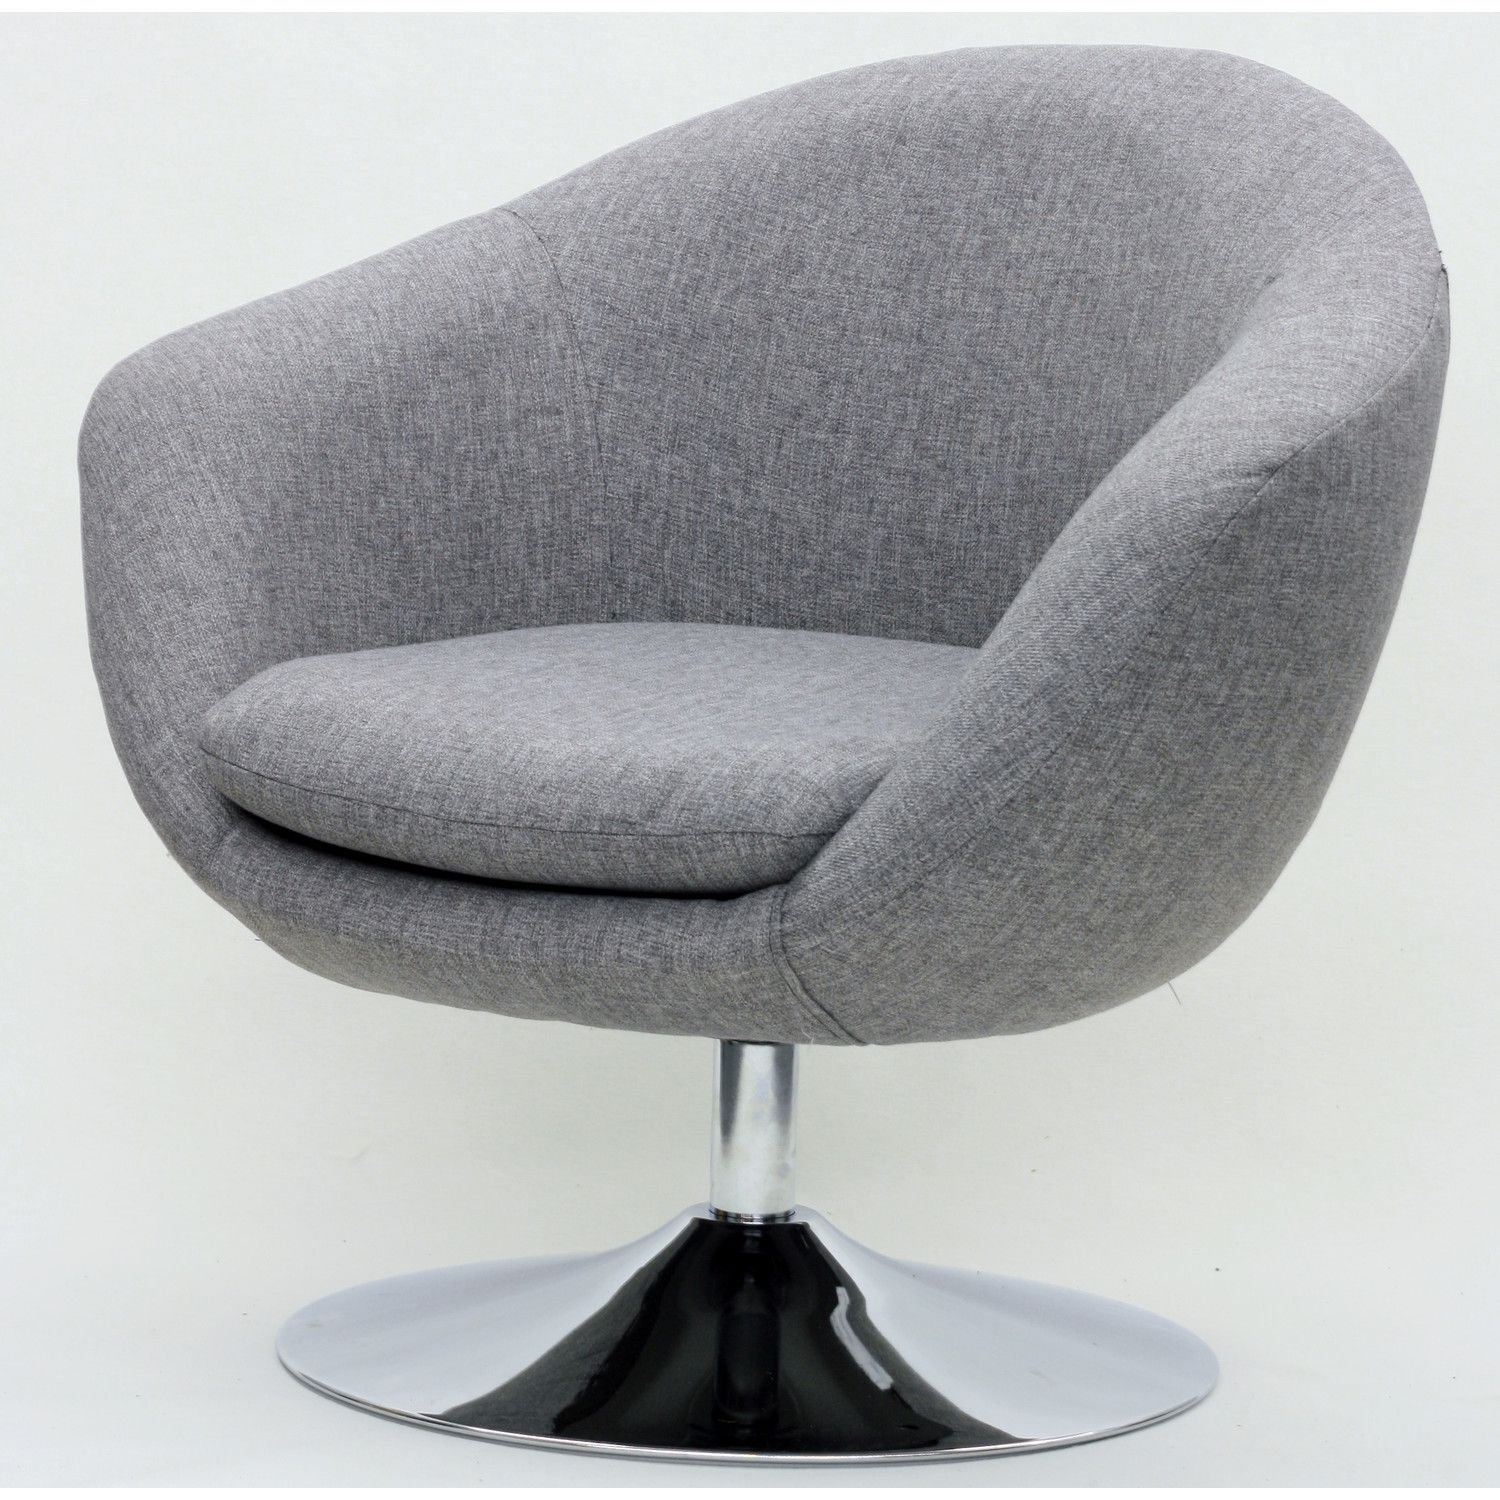 Fox Hill Trading Overman Disc Base Comet Barrel Chair